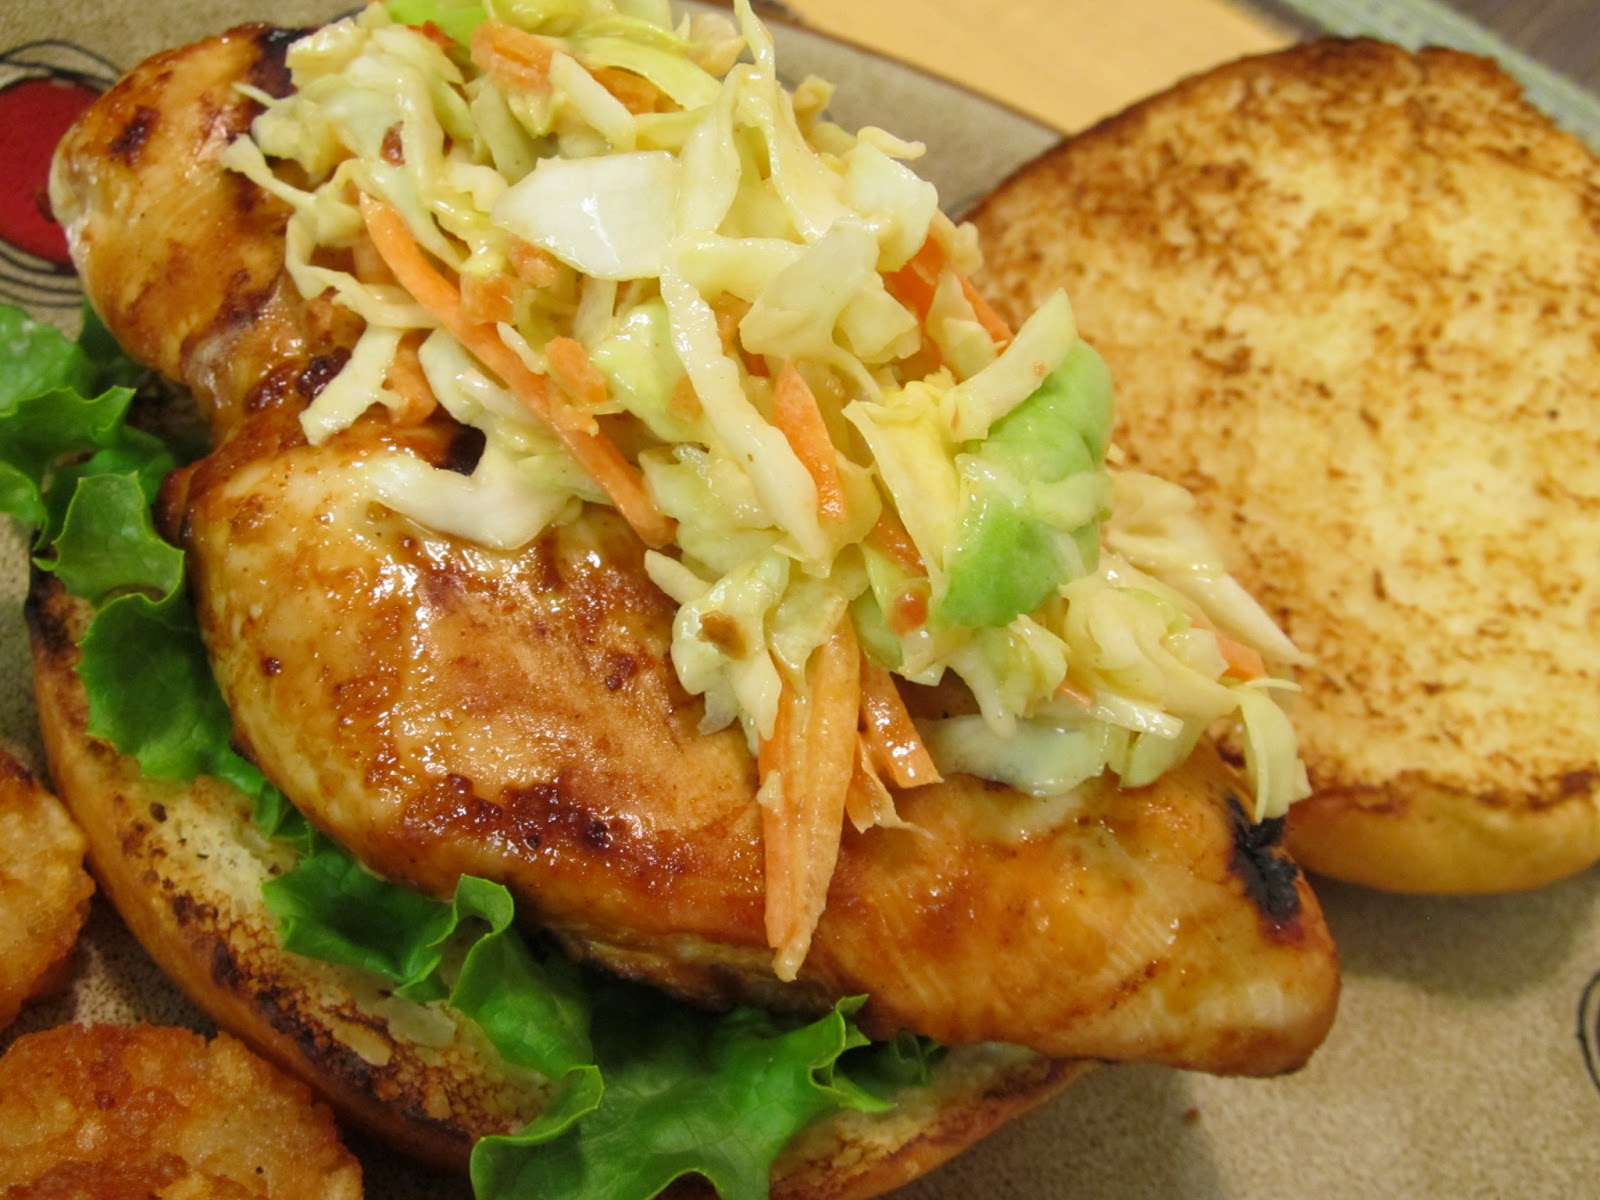 Jenn's Food Journey: Grilled Asian Chicken Sandwich with Slaw